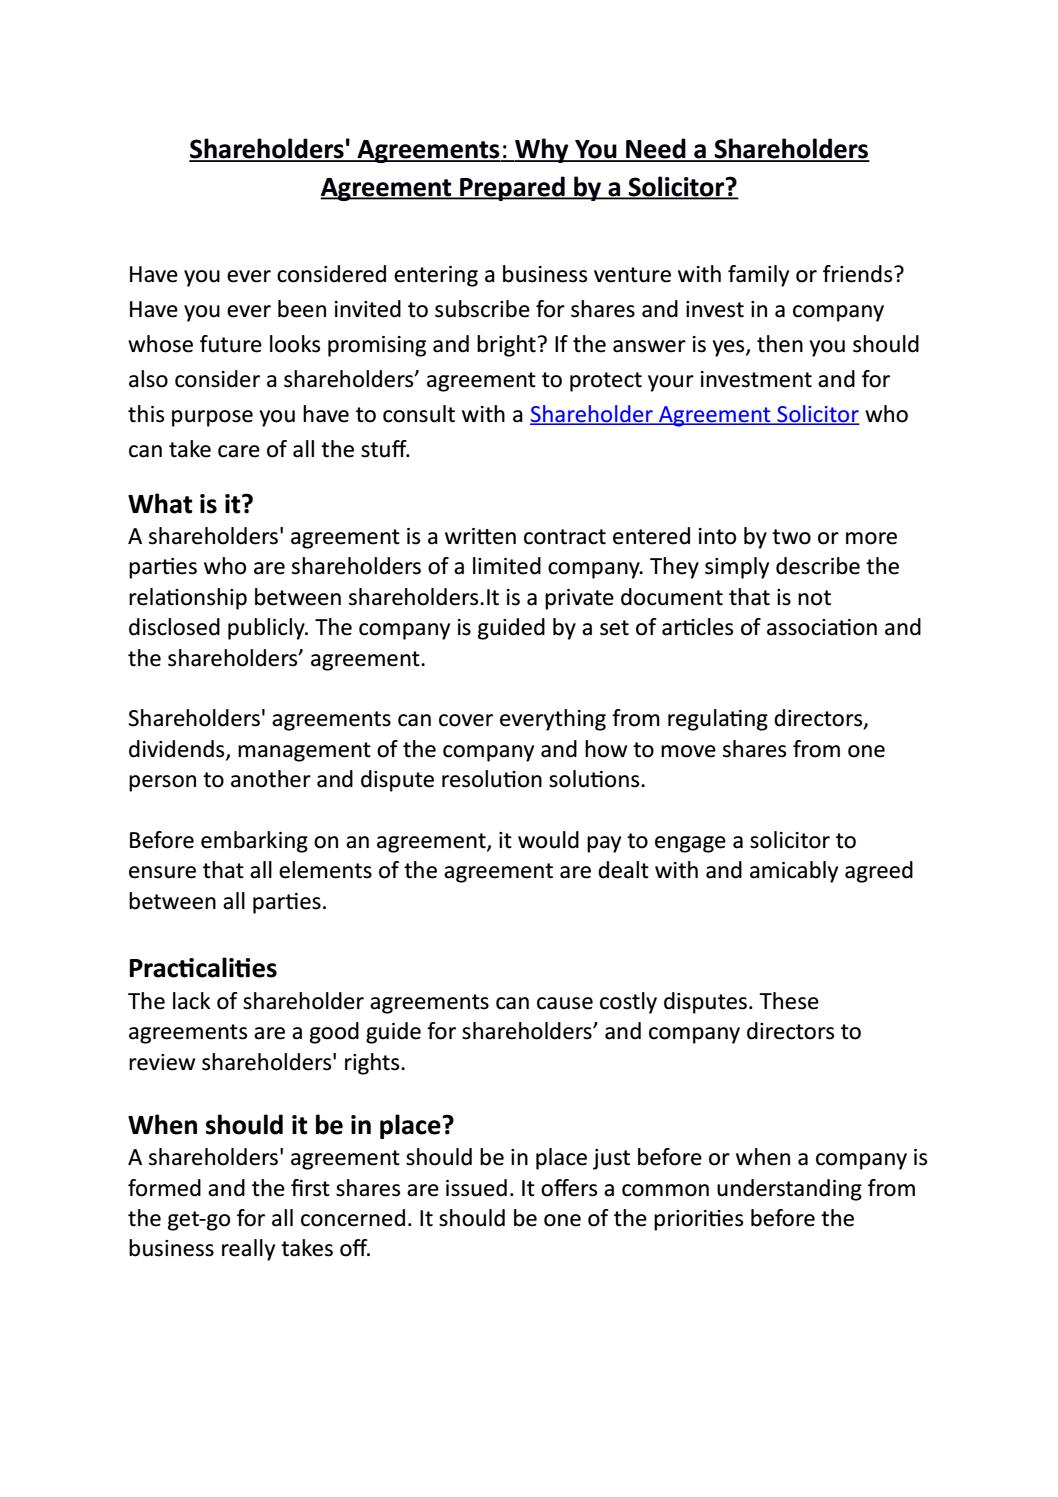 Shareholders Agreements Why You Need A Shareholders Agreement